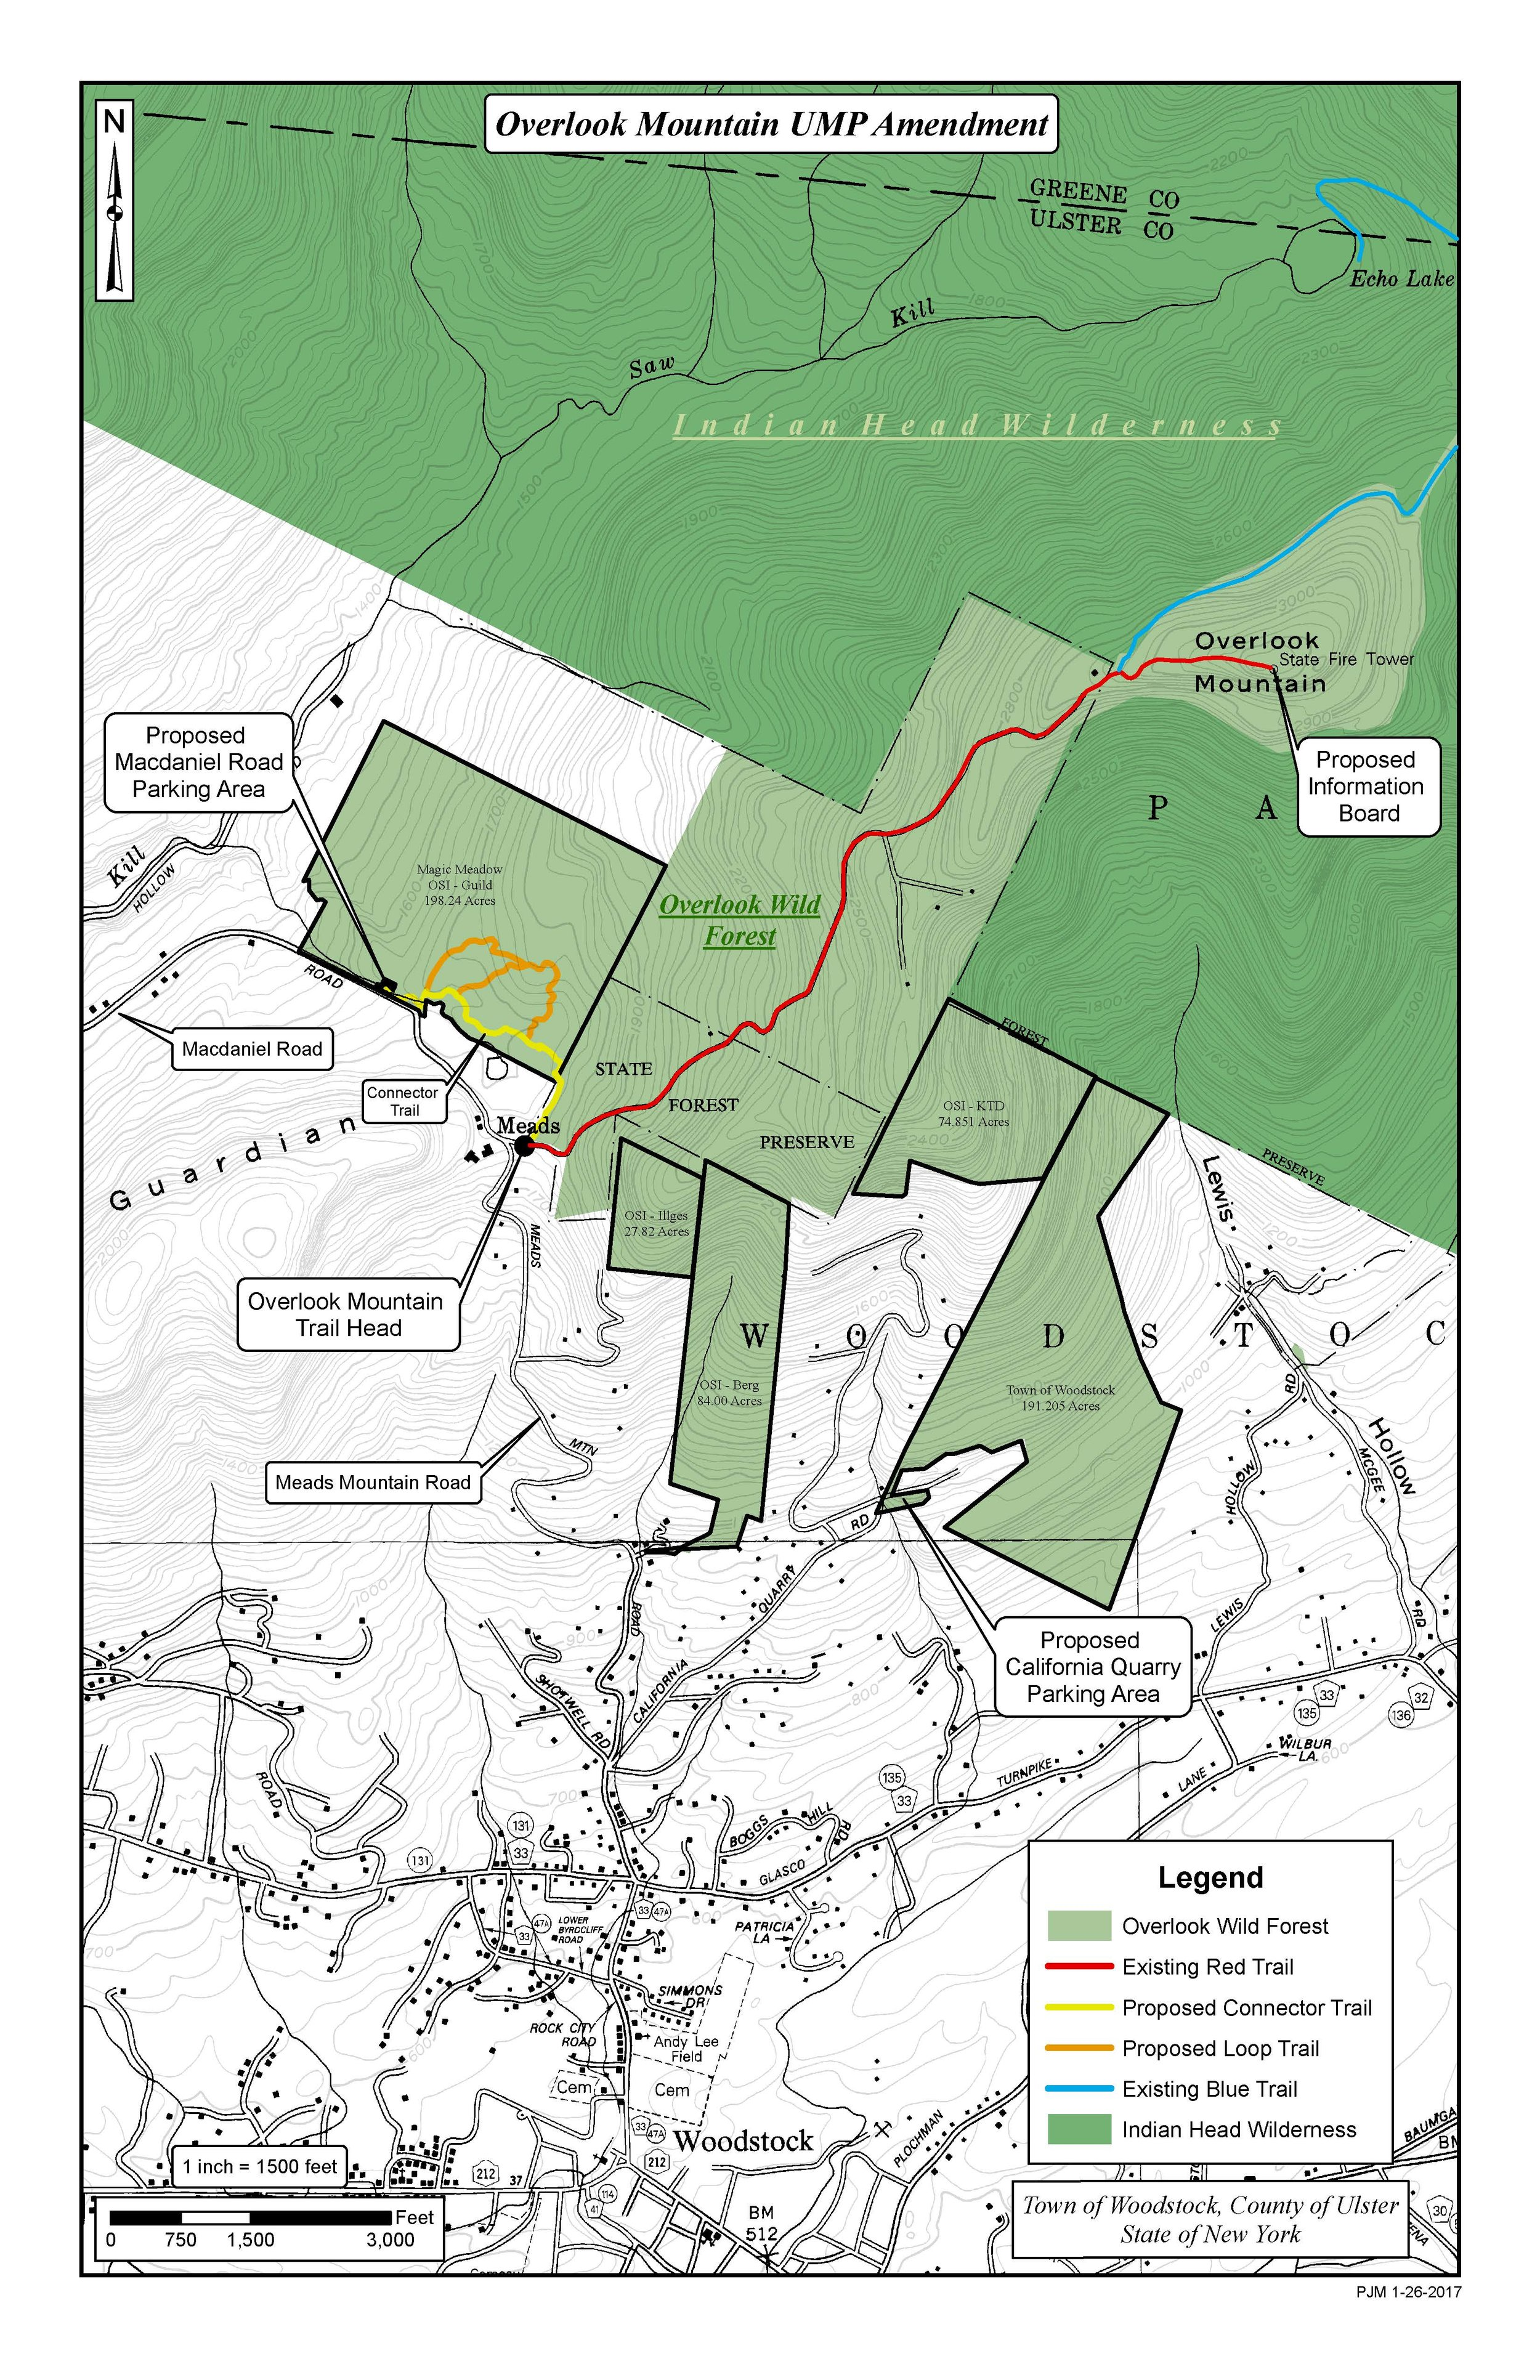 New parking lot and trails to access trails to Overlook Mountain courtsey of NYSDEC